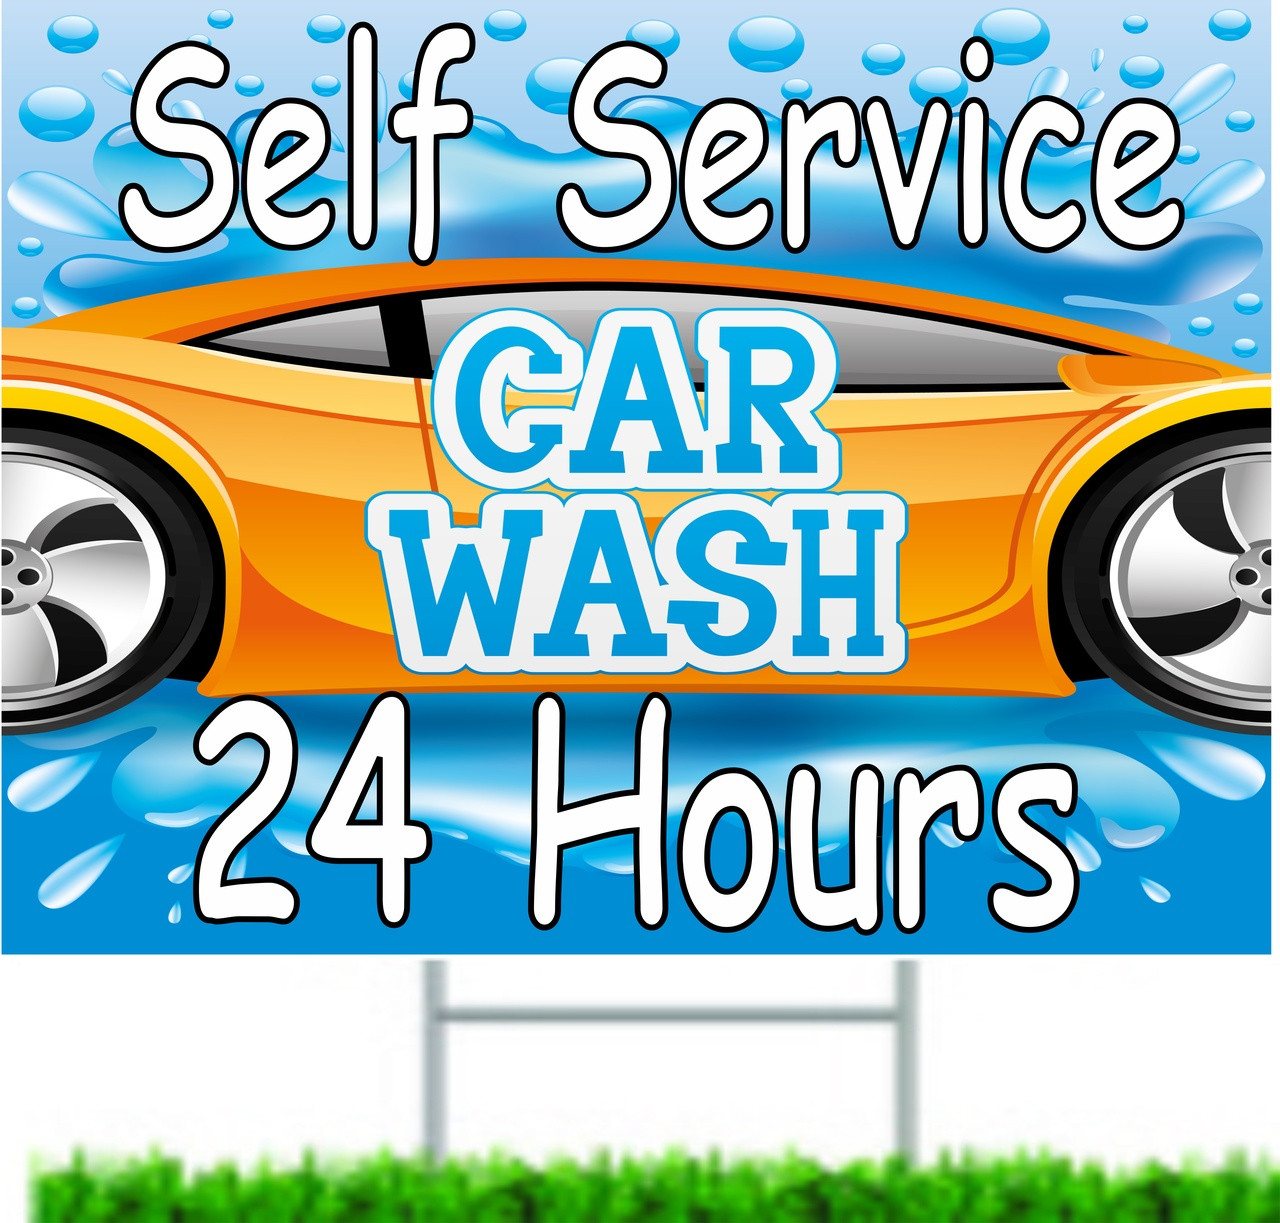 Self Service Car Wash Yard Signs